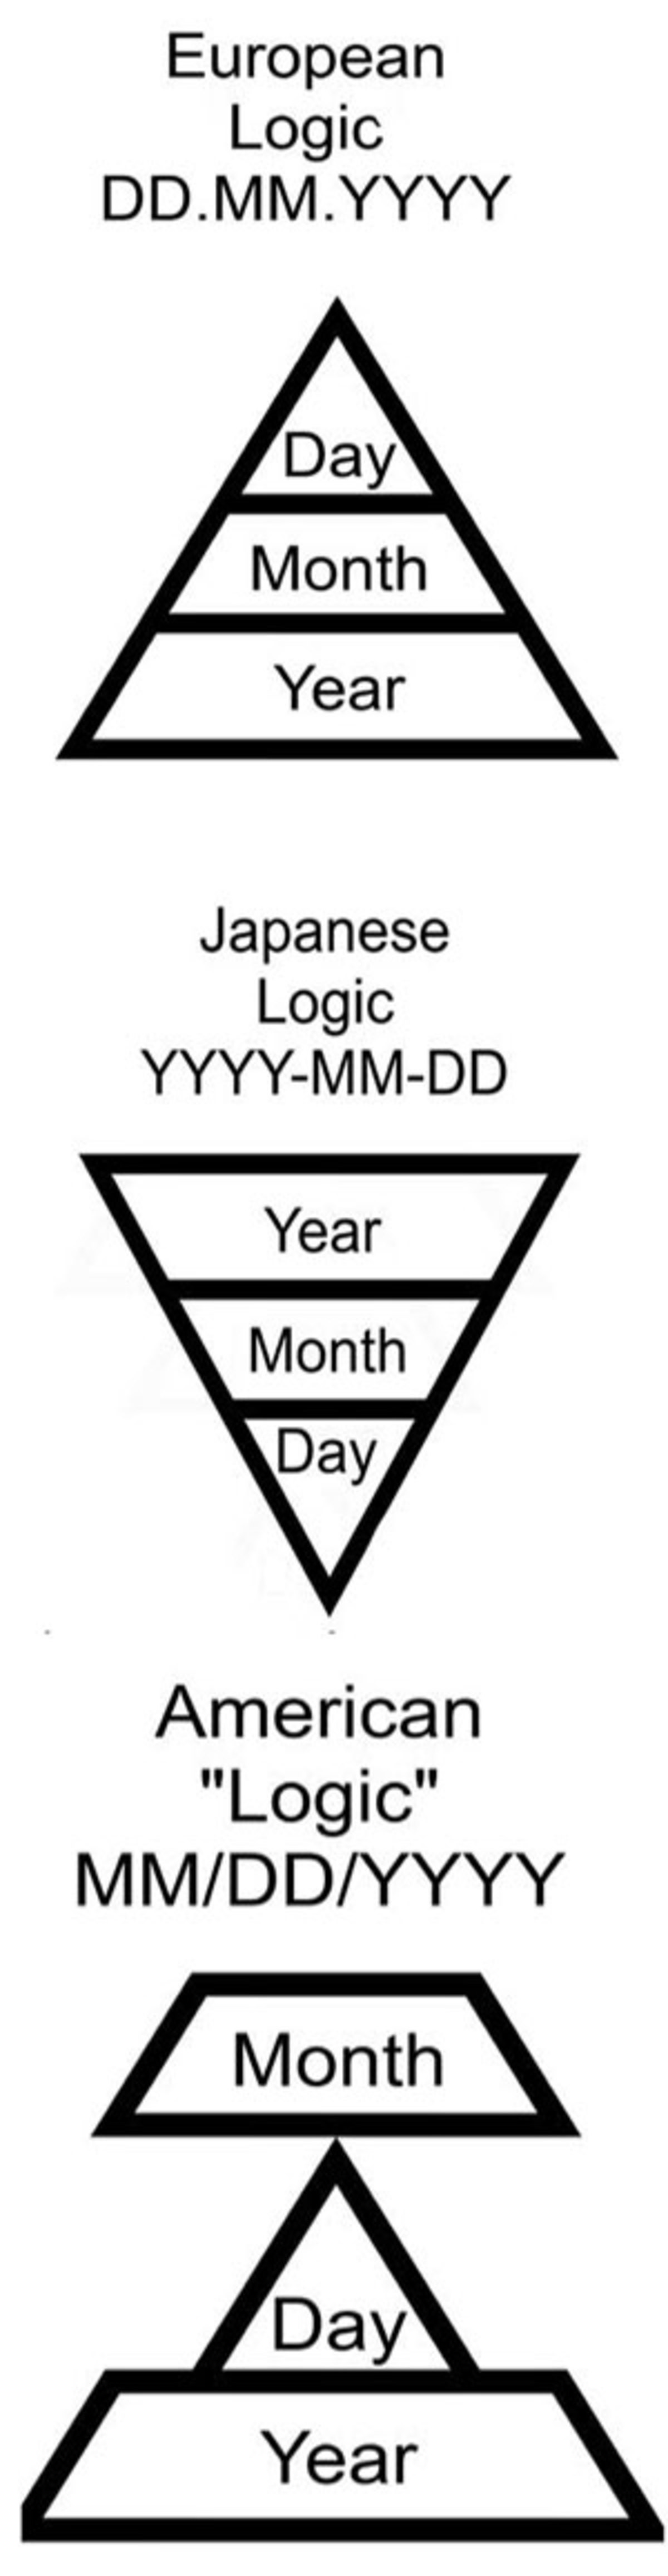 """""""Date system logic"""". .. The most annoying thing is when it's in the first 12 days of a month and you can't tell if the source is using the European system or the American system."""